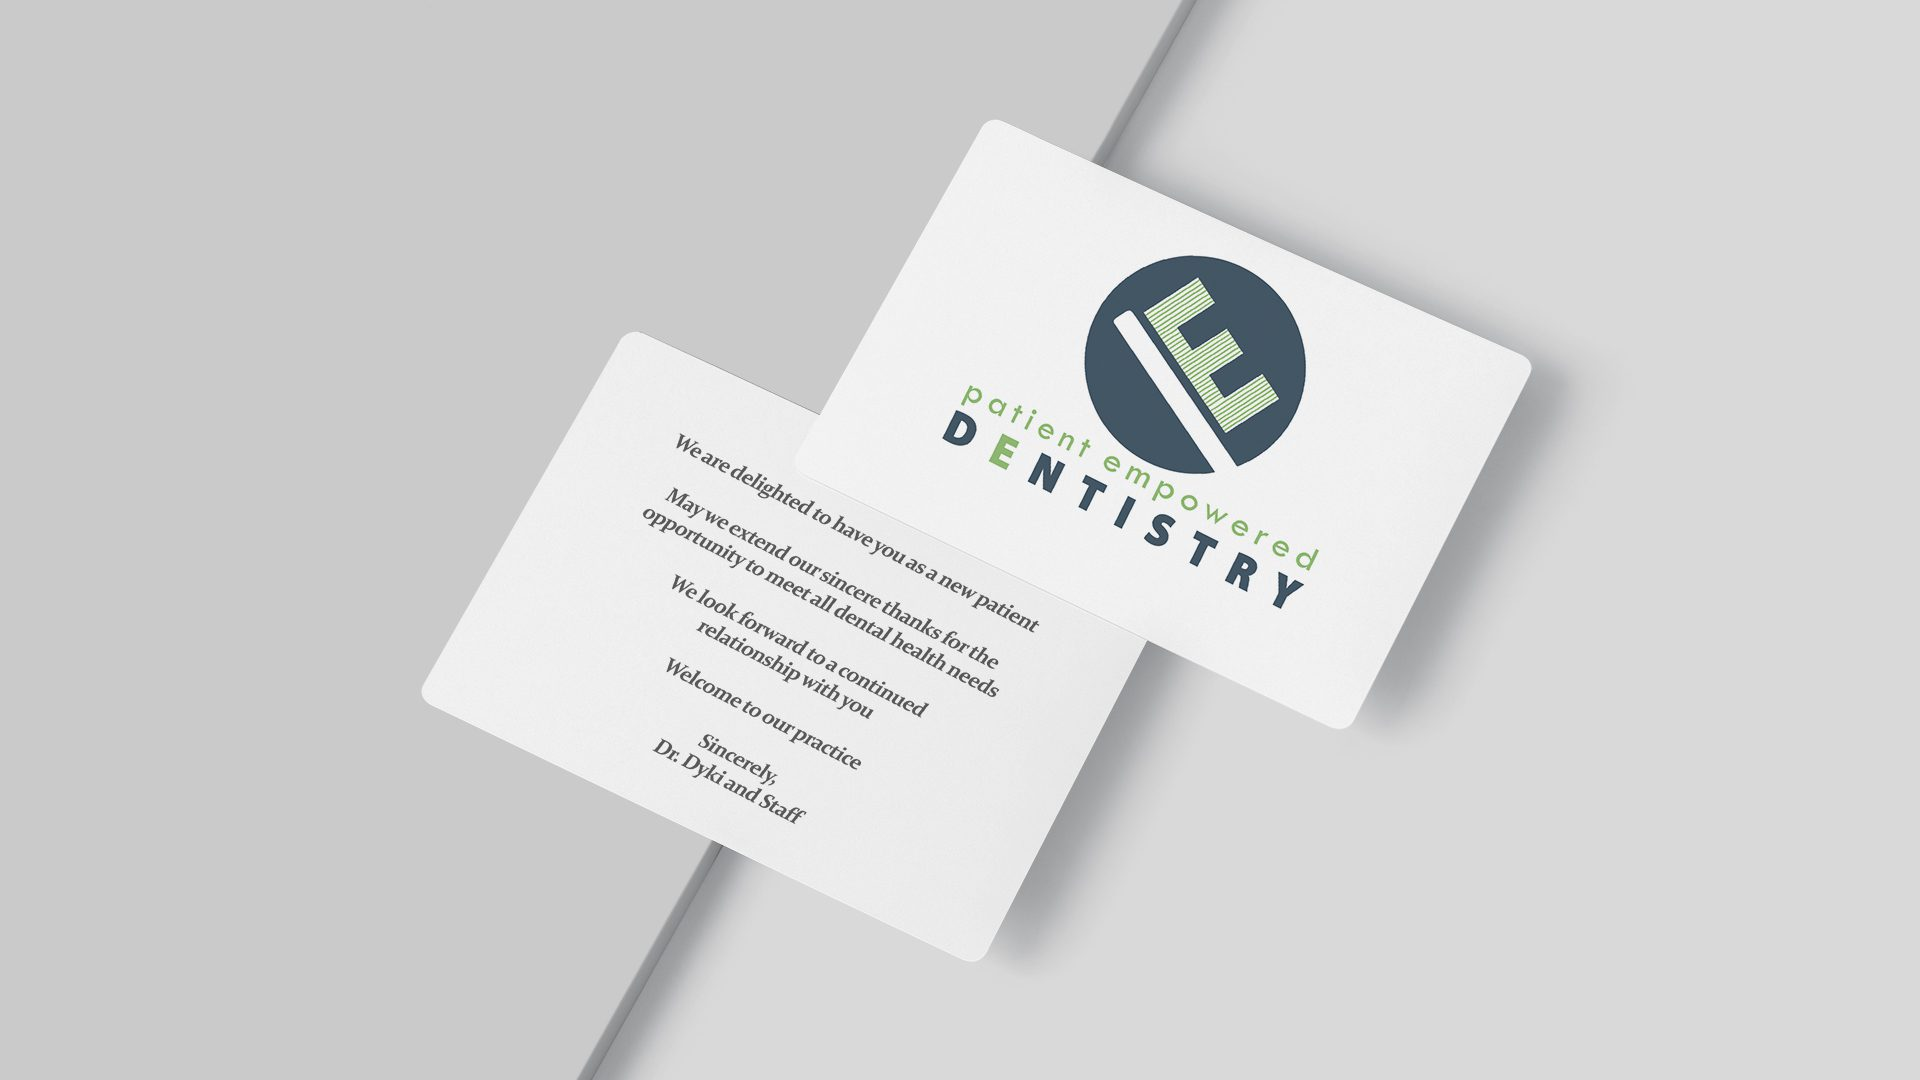 Patient Empowered Dentistry - New Patient Cards Mockup 04